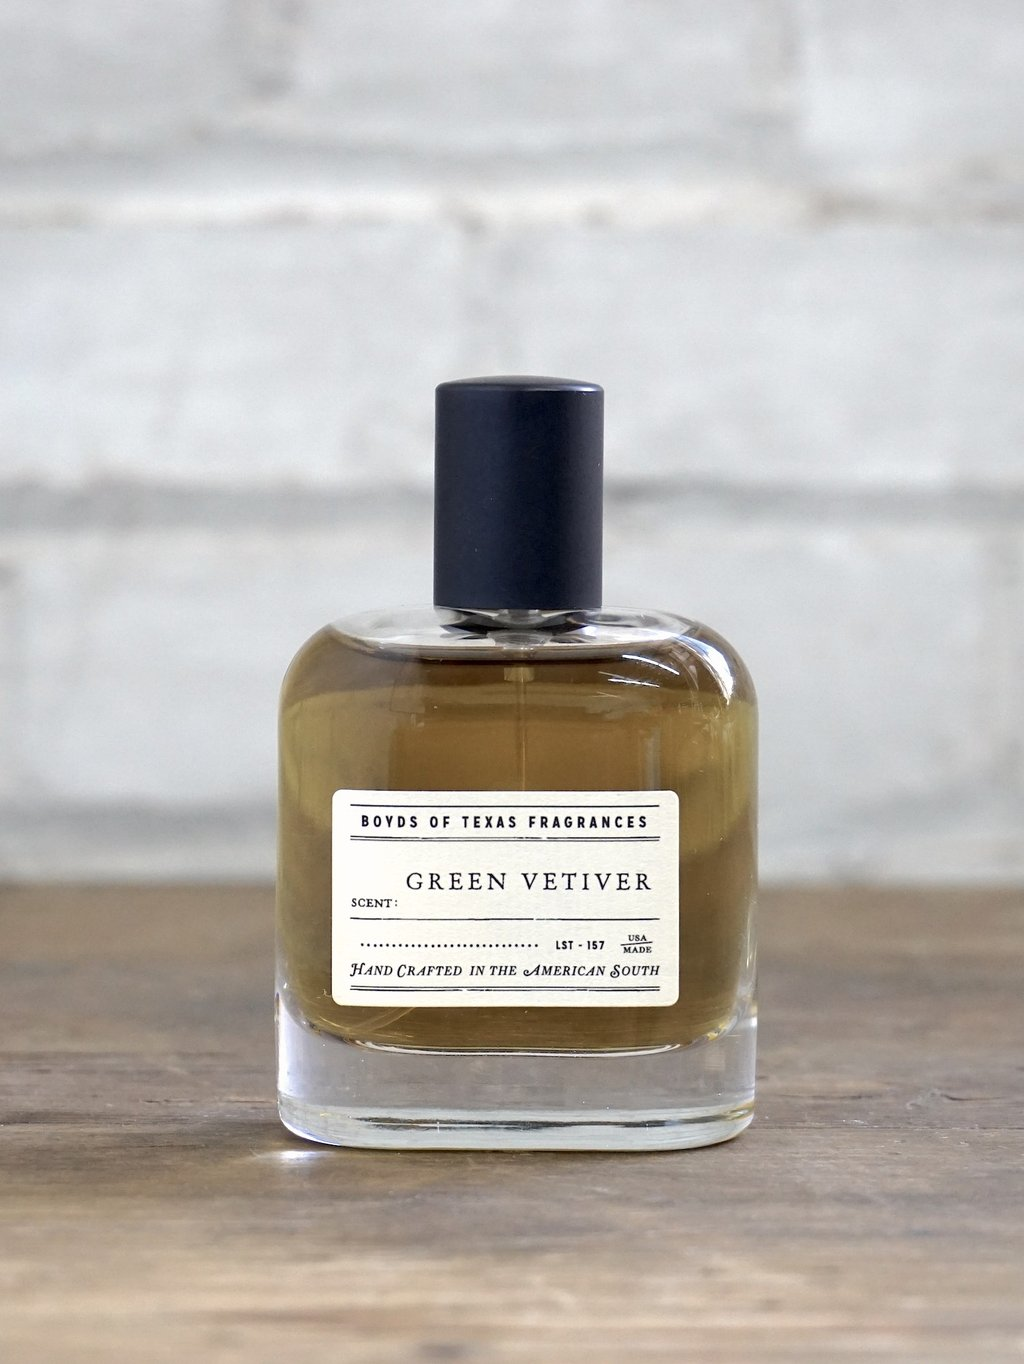 Green Vetiver - Eau de Parfum ~ Boyd's of Texas 6 Whiskey all natural scent perfume